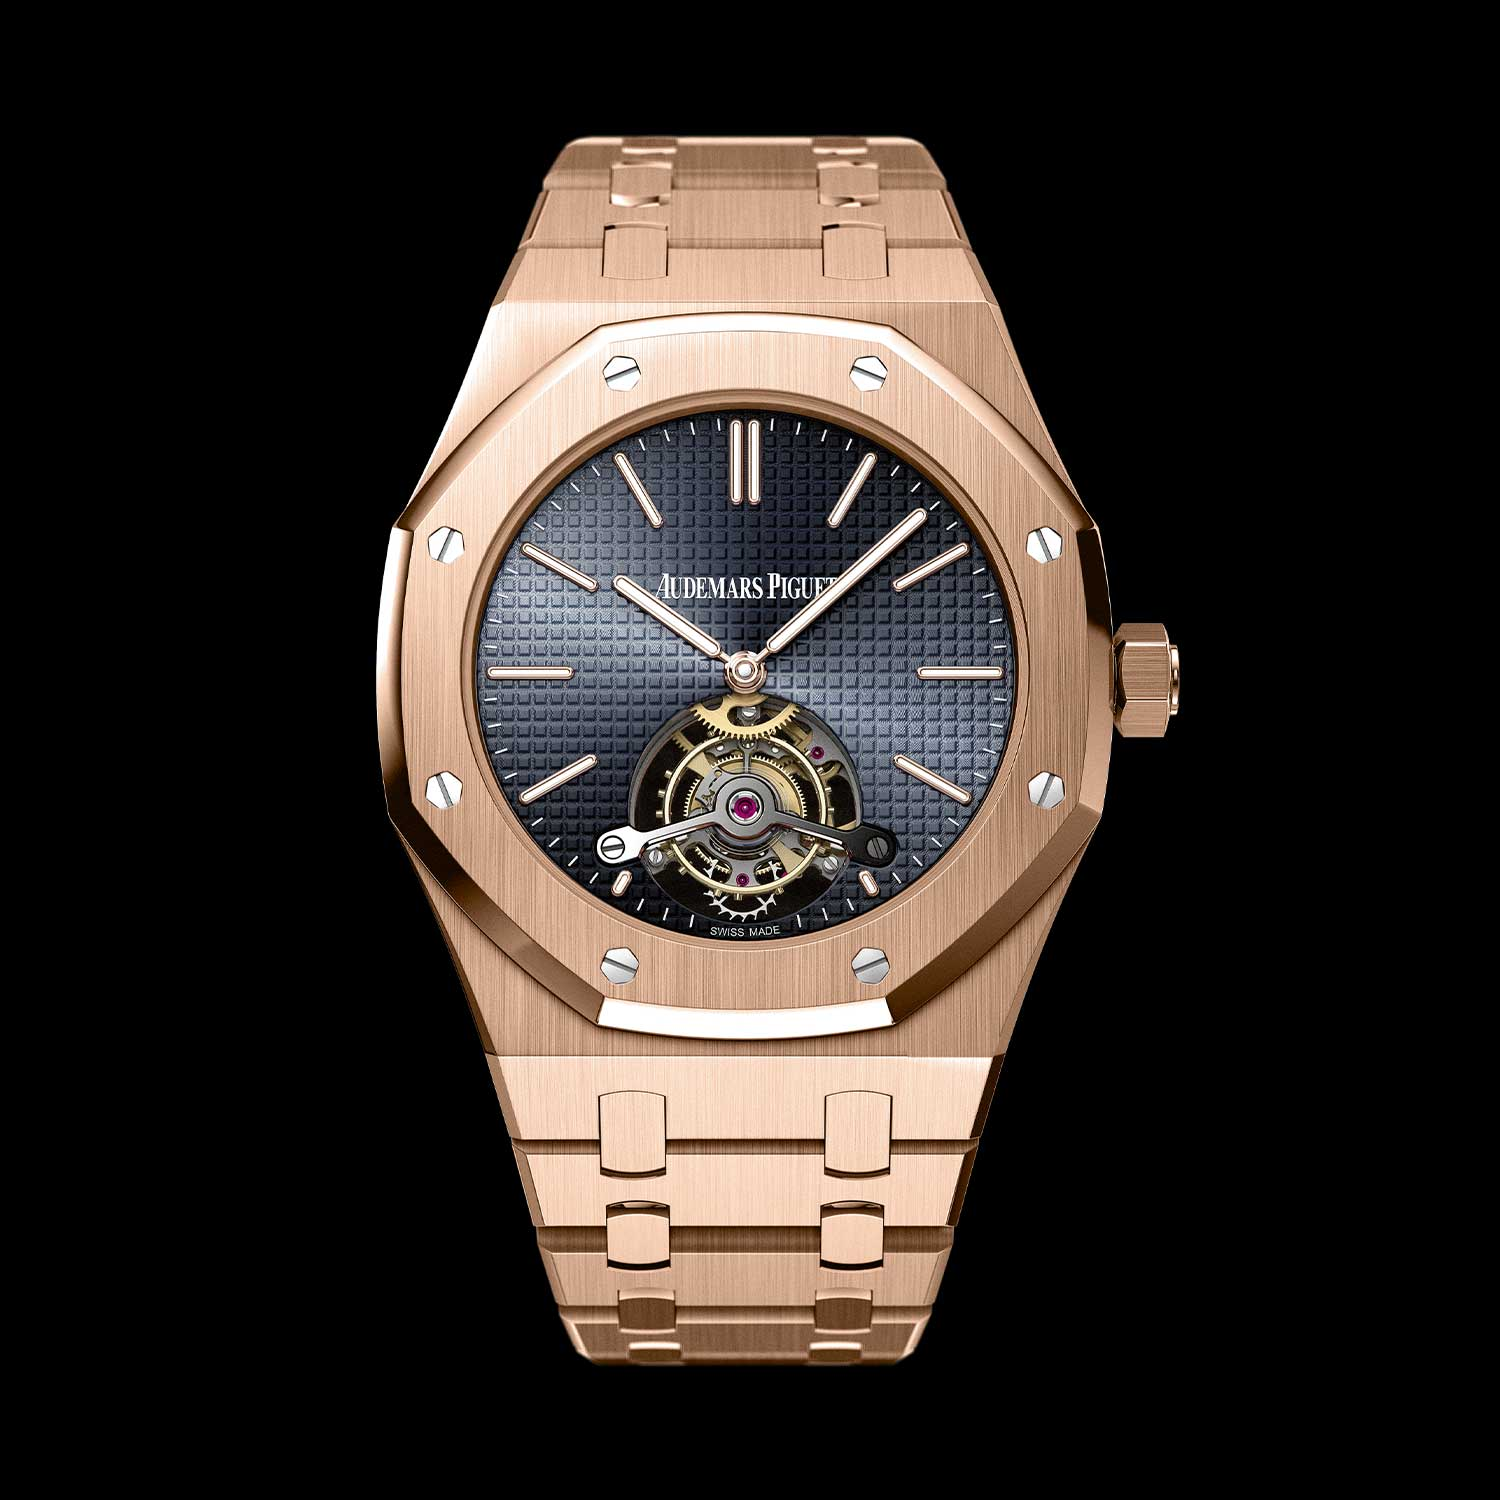 2012: Celebrating the Royal Oak's 40th Anniversary, Audemars Piguet introduced the Royal Oak Extra-Thin Royal Oak Tourbillon, with a 41mm 18-carat pink gold case powered by the Hand-wound Manufacture Calibre 2924